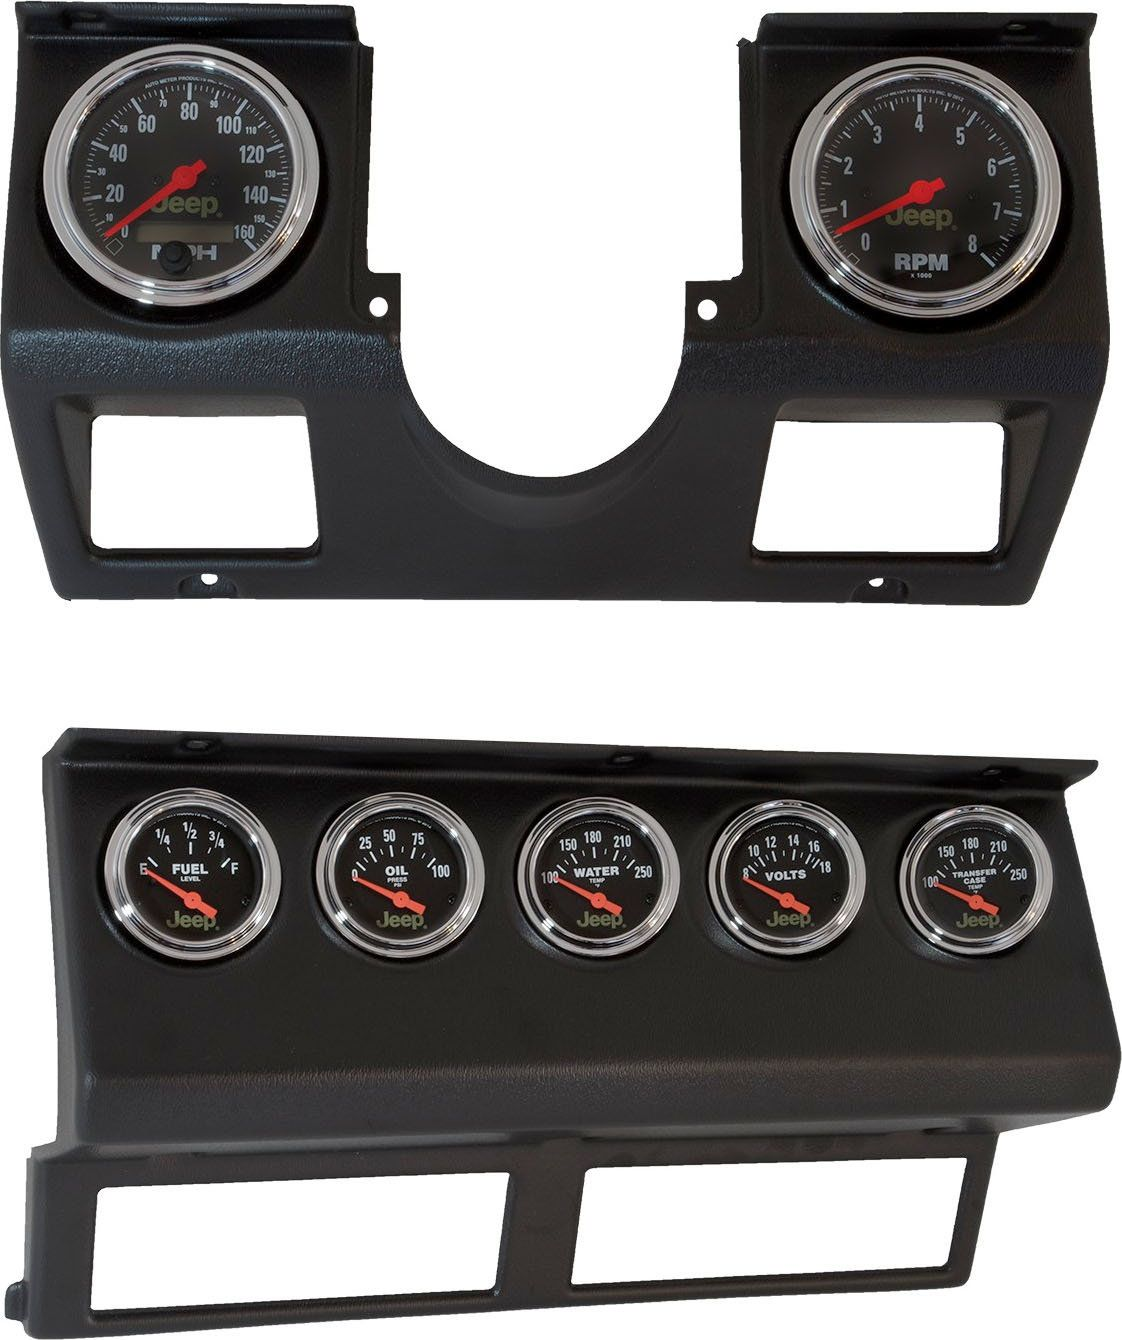 make gauge installation simple and clean with auto meter s direct fit dash replacement panels their [ 1122 x 1340 Pixel ]